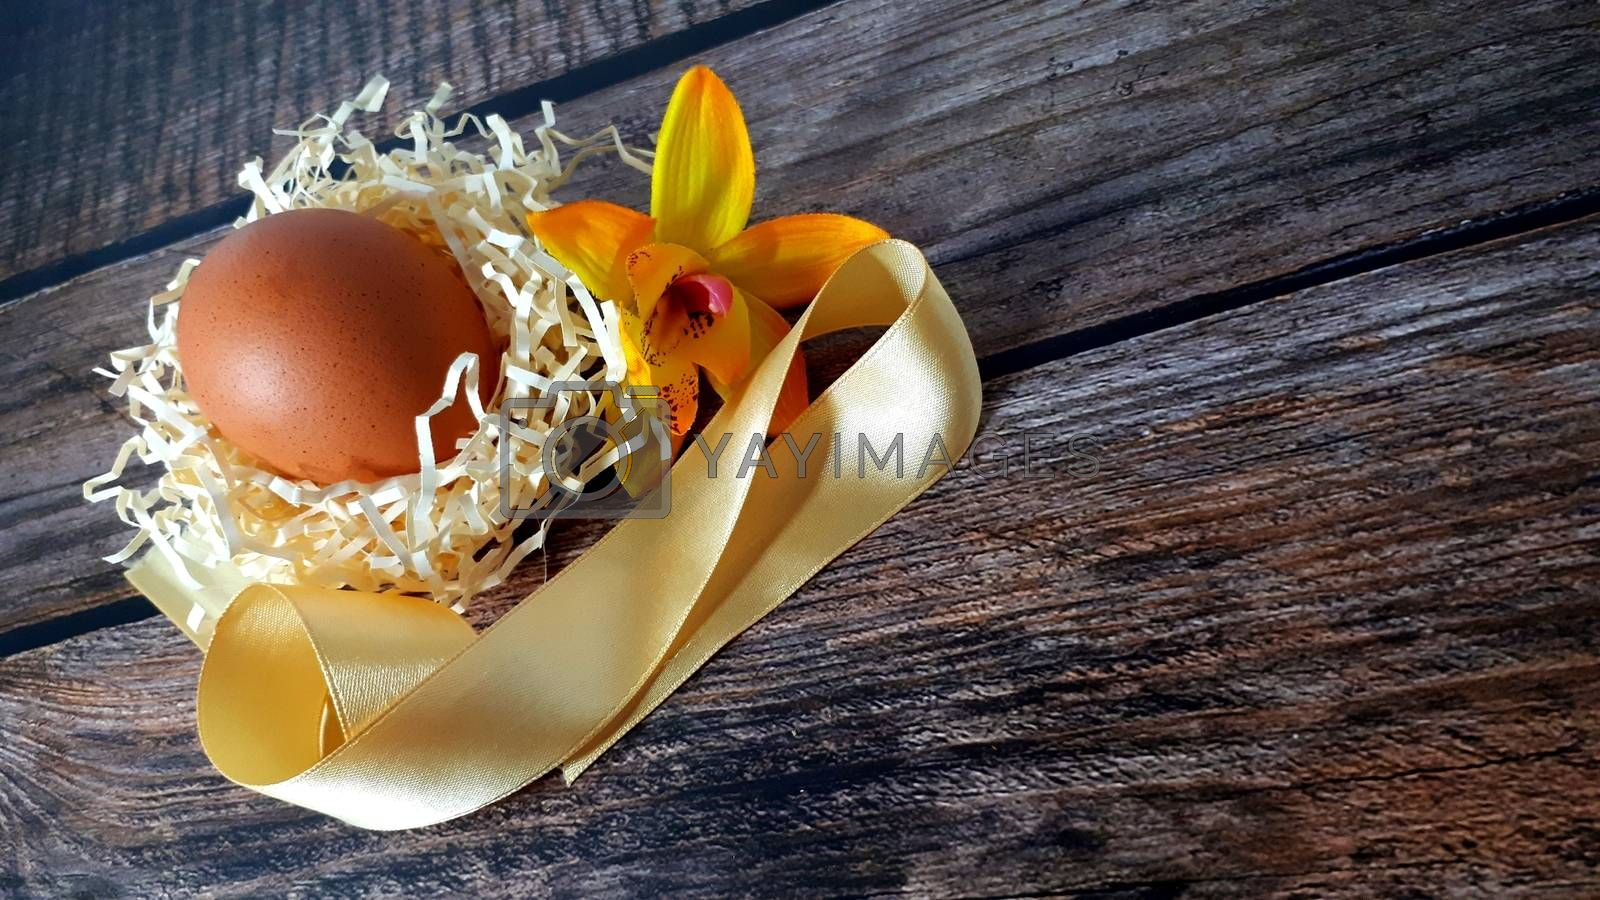 Chicken egg in a nest of straw and beige satin ribbon on a wooden table. Close-up.